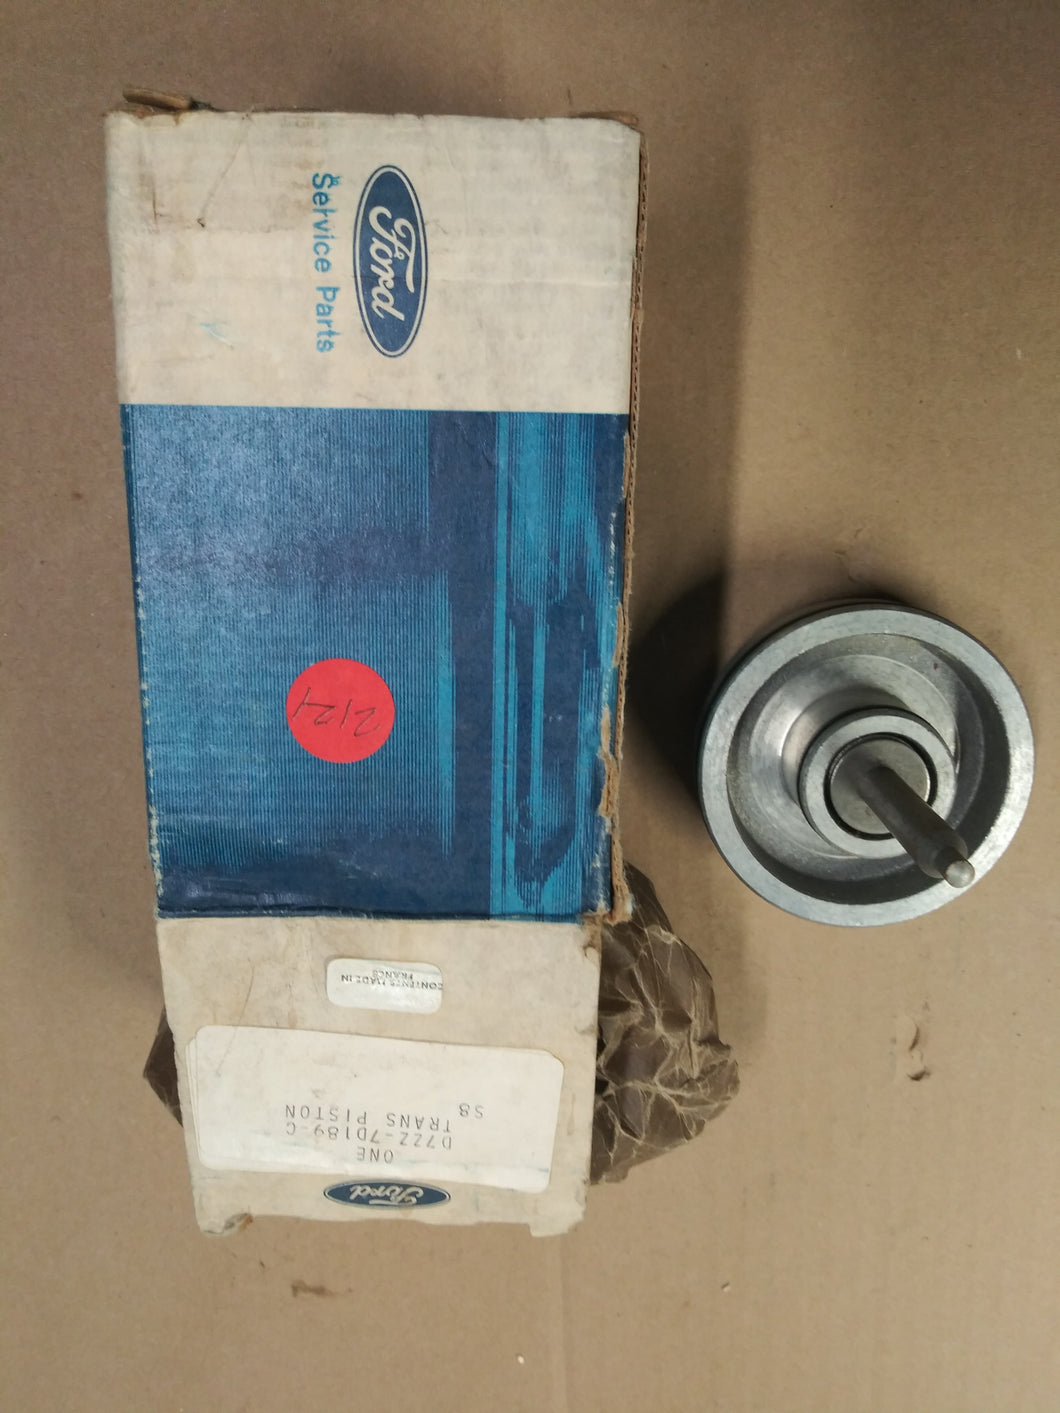 1977 - 1981 Ford Mustang Pinto Maverick C3 trans piston and rod NOS